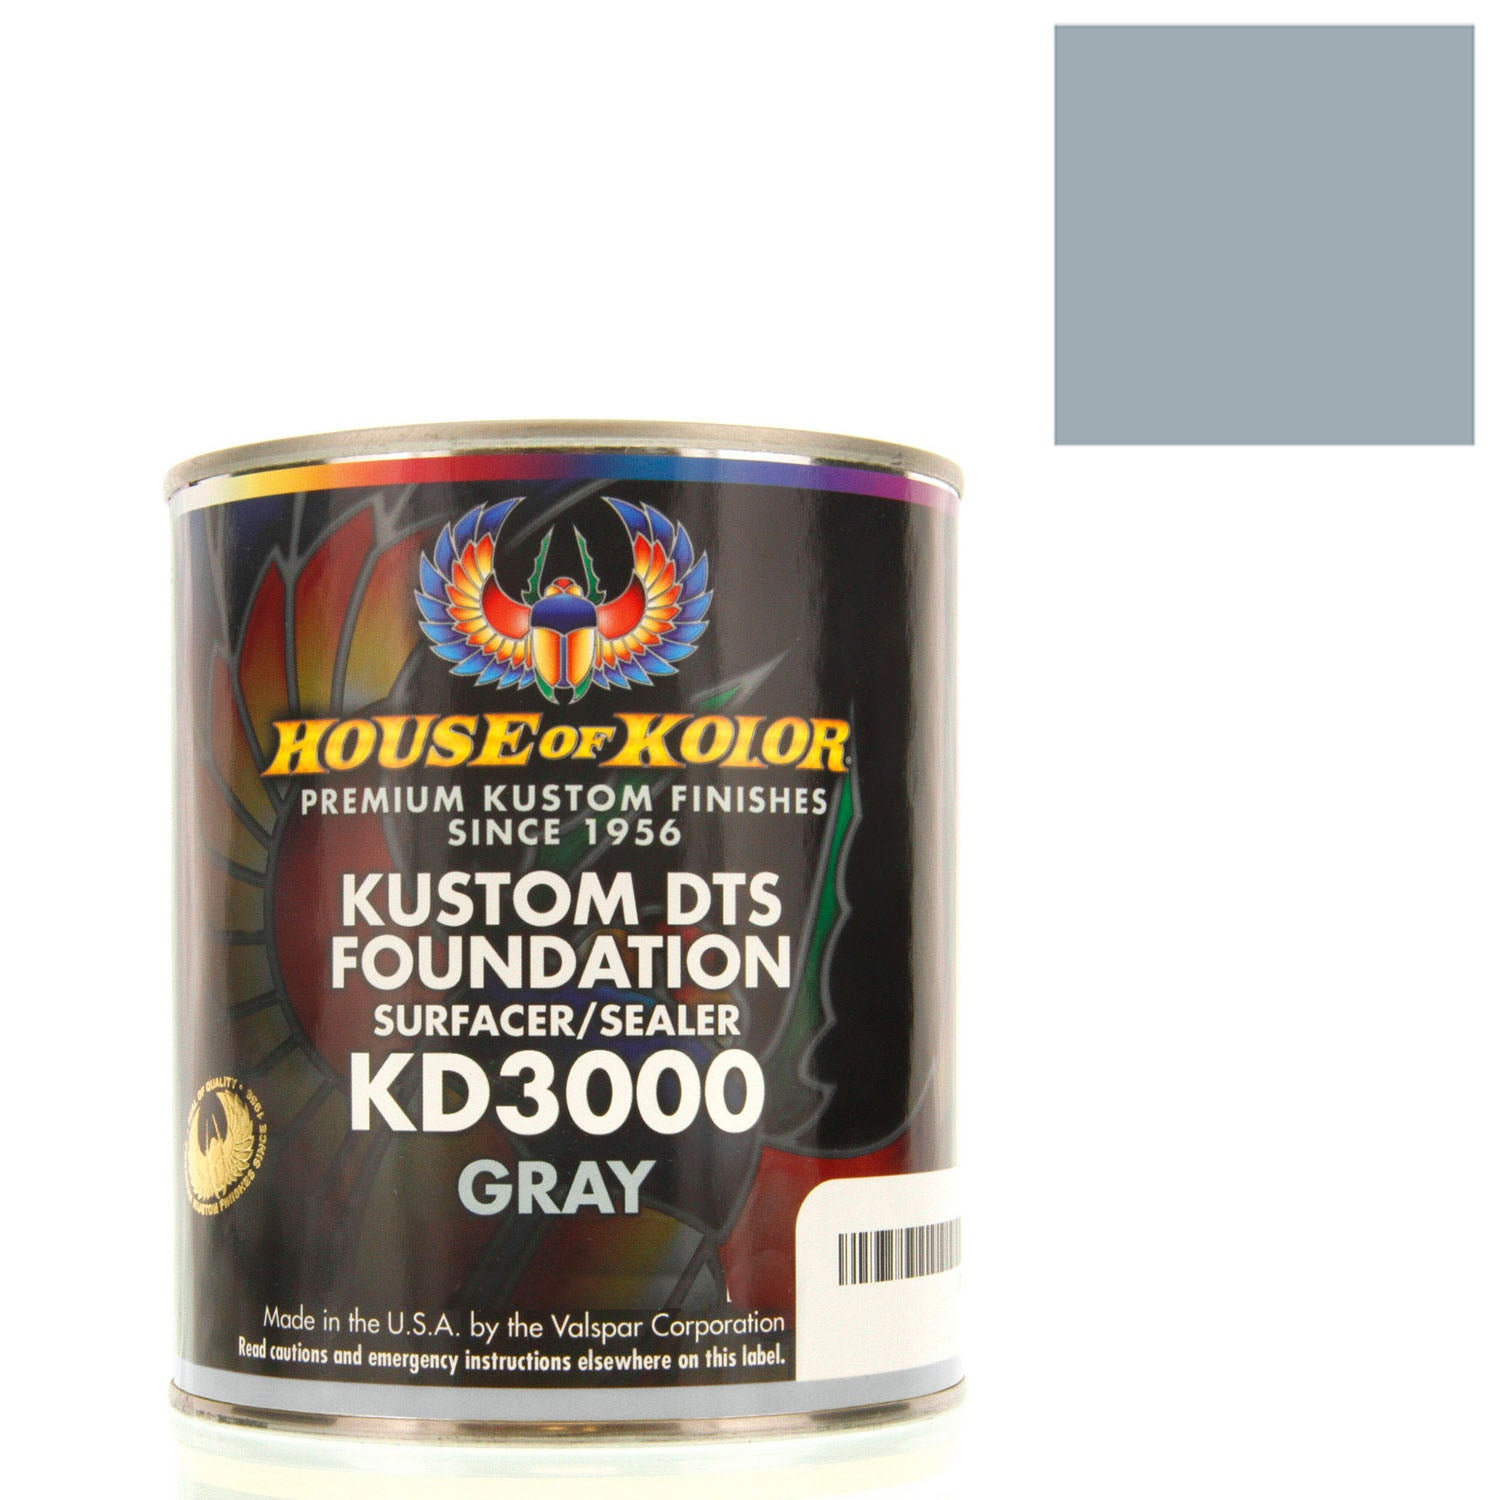 Gray - Custom Dts Foundation Surfacer Sealer Epoxy Primer, 1 Gallon House of Kolor